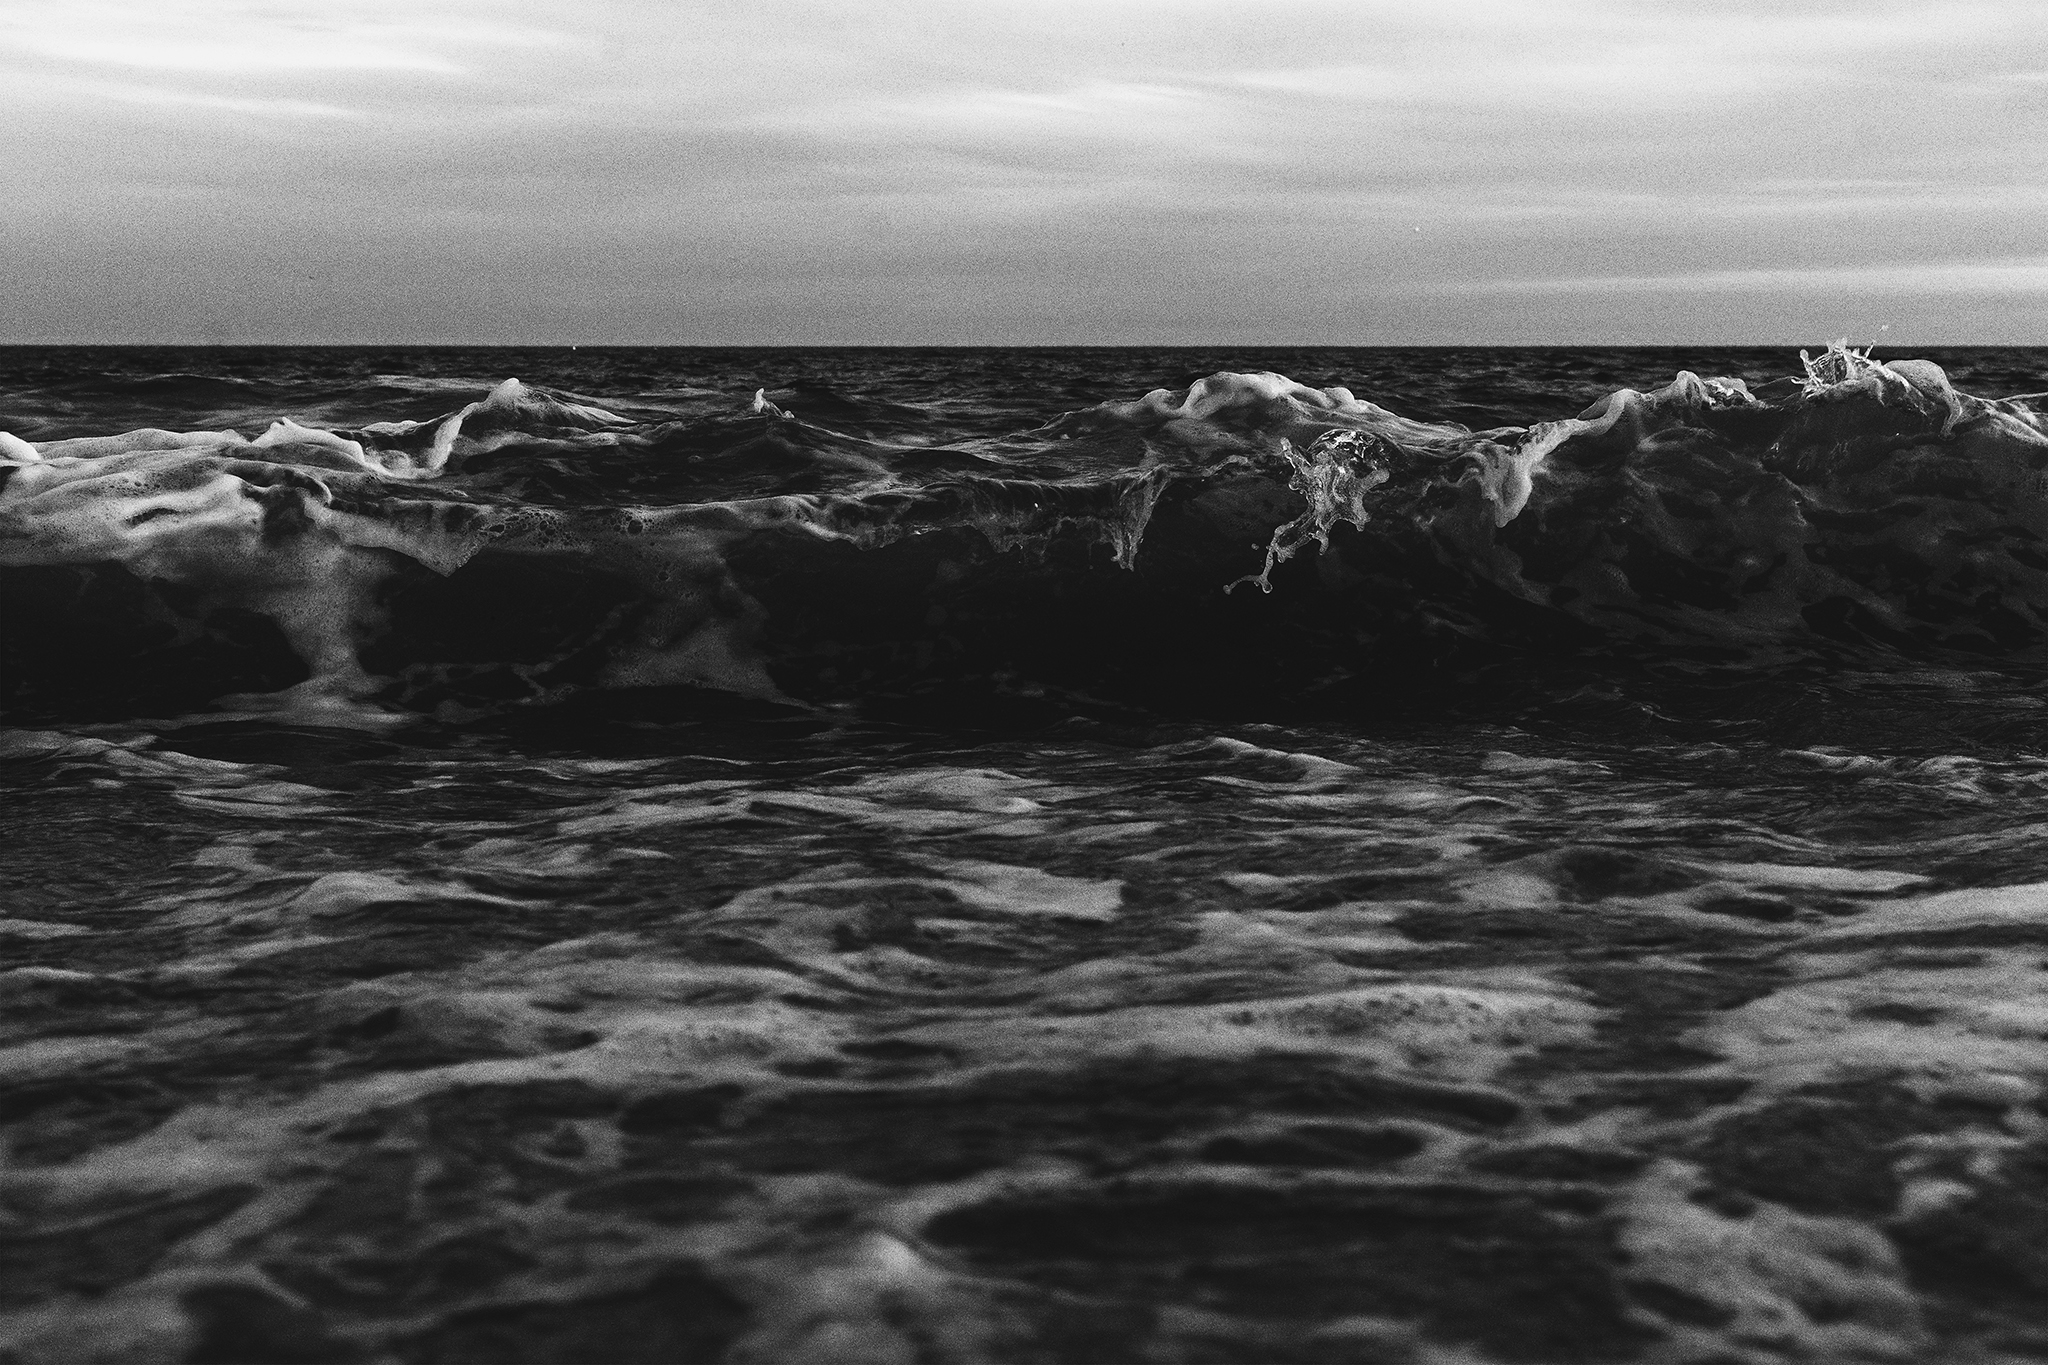 A high-contrast black and white photograph of waves as they come crashing into the sea.